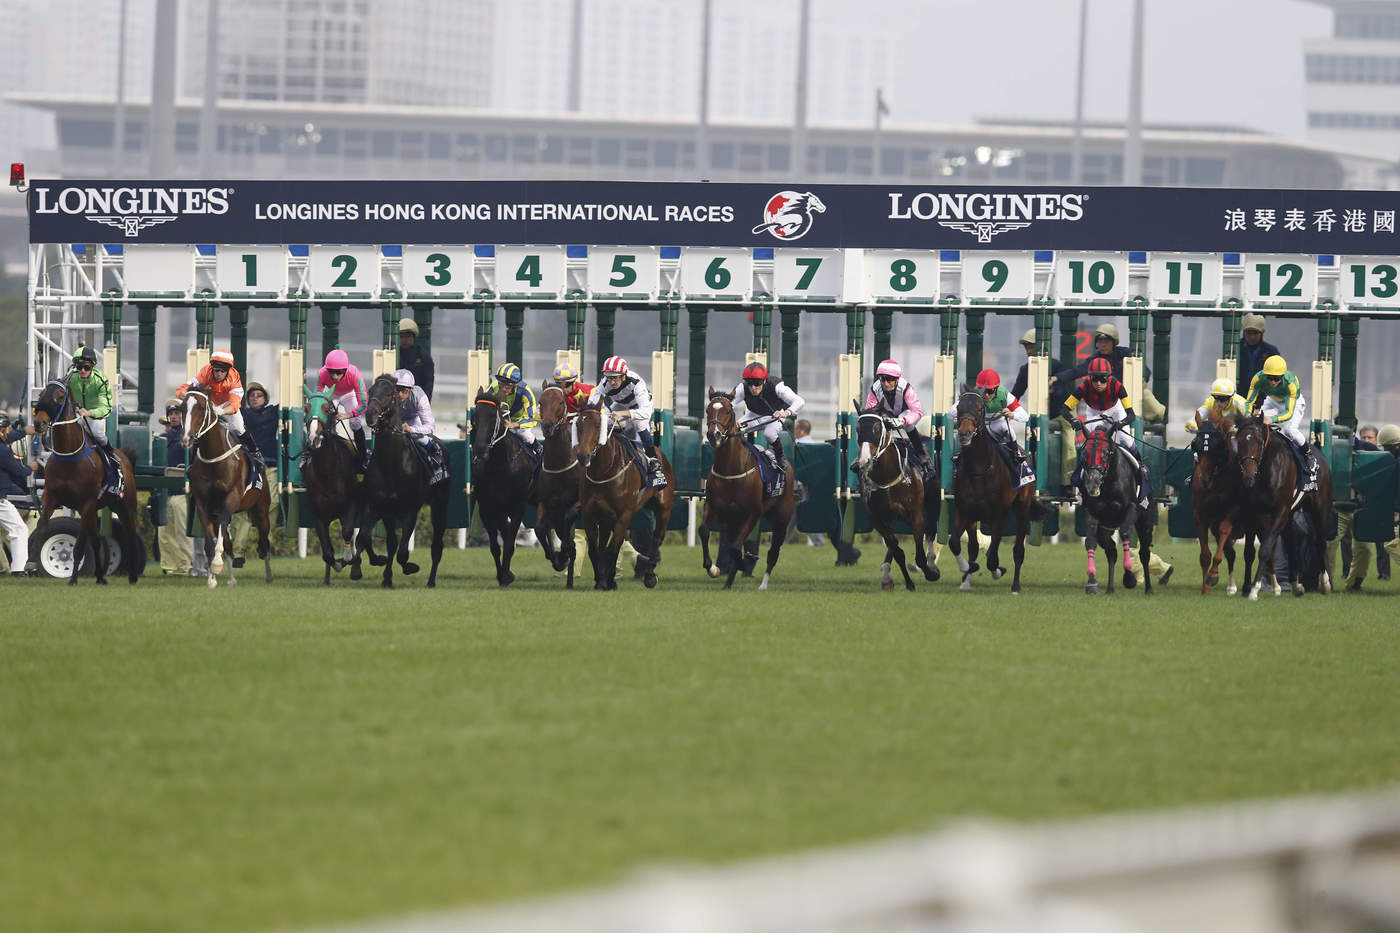 Longines Flat Racing Event: Longines Hong Kong International Races – a competitive climax of the horse racing calendar 3